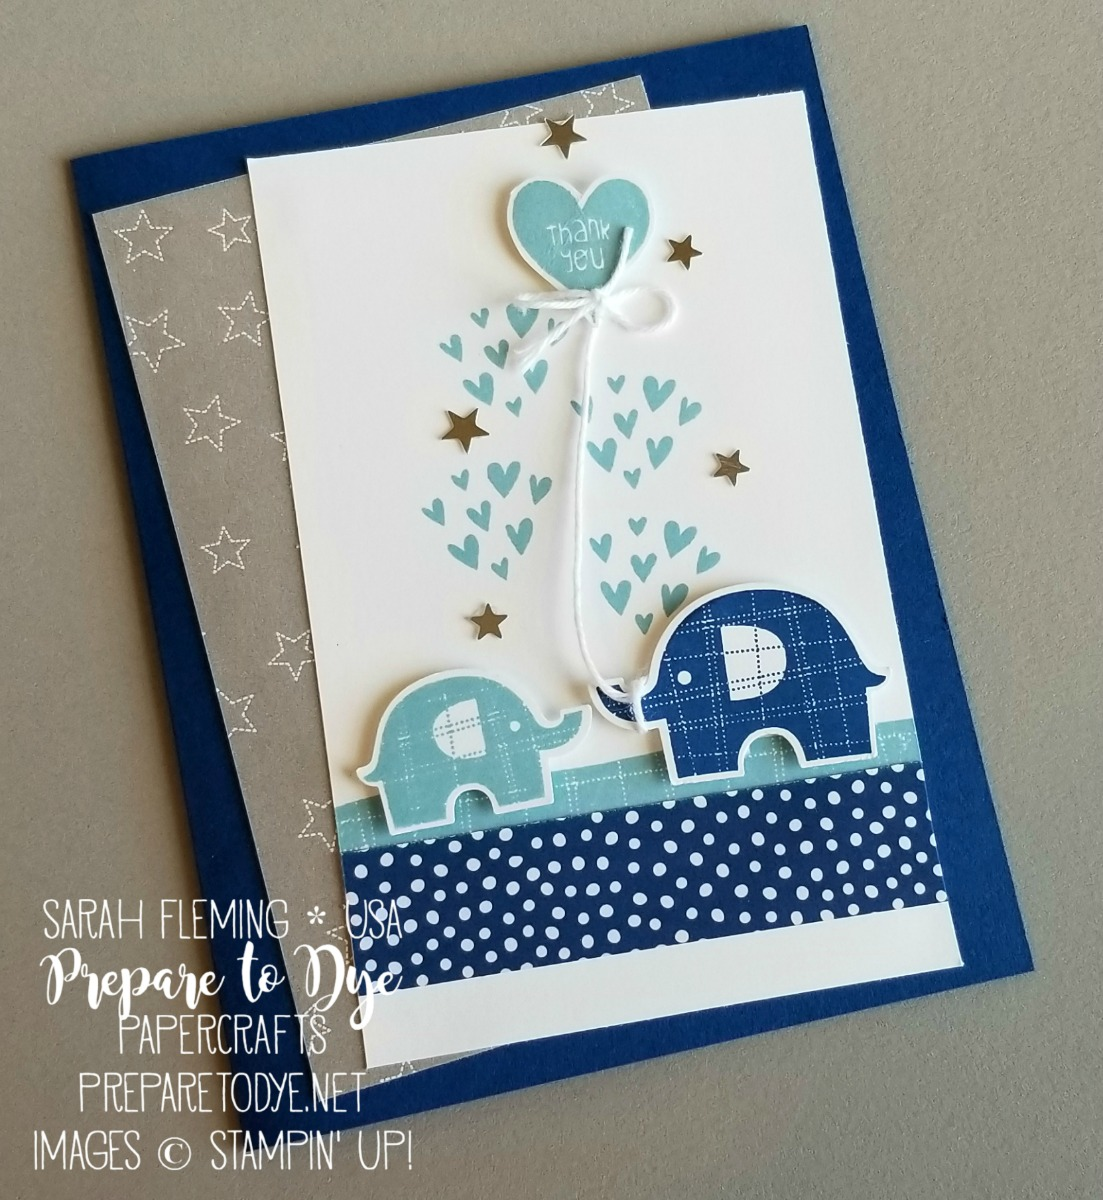 Stampin' Up! handmade baby boy thank you card using Baby Elephant stamps and Elephant Builder Punch - Sarah Fleming - Prepare to Dye Papercrafts